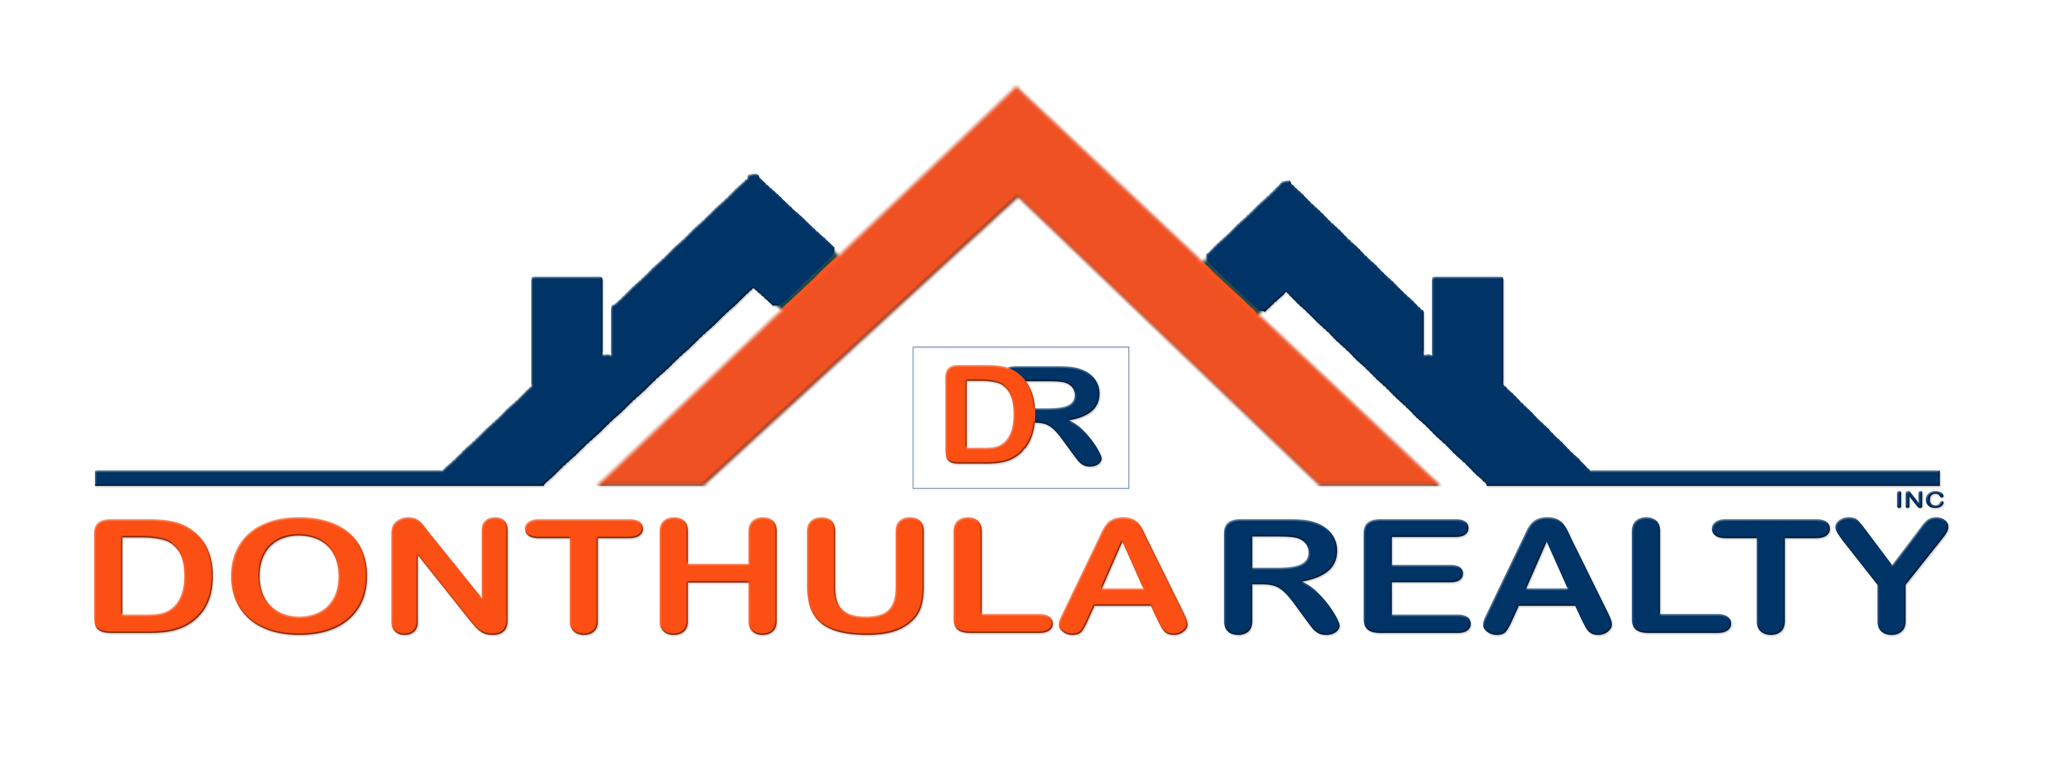 MB Donthula Realty Inc